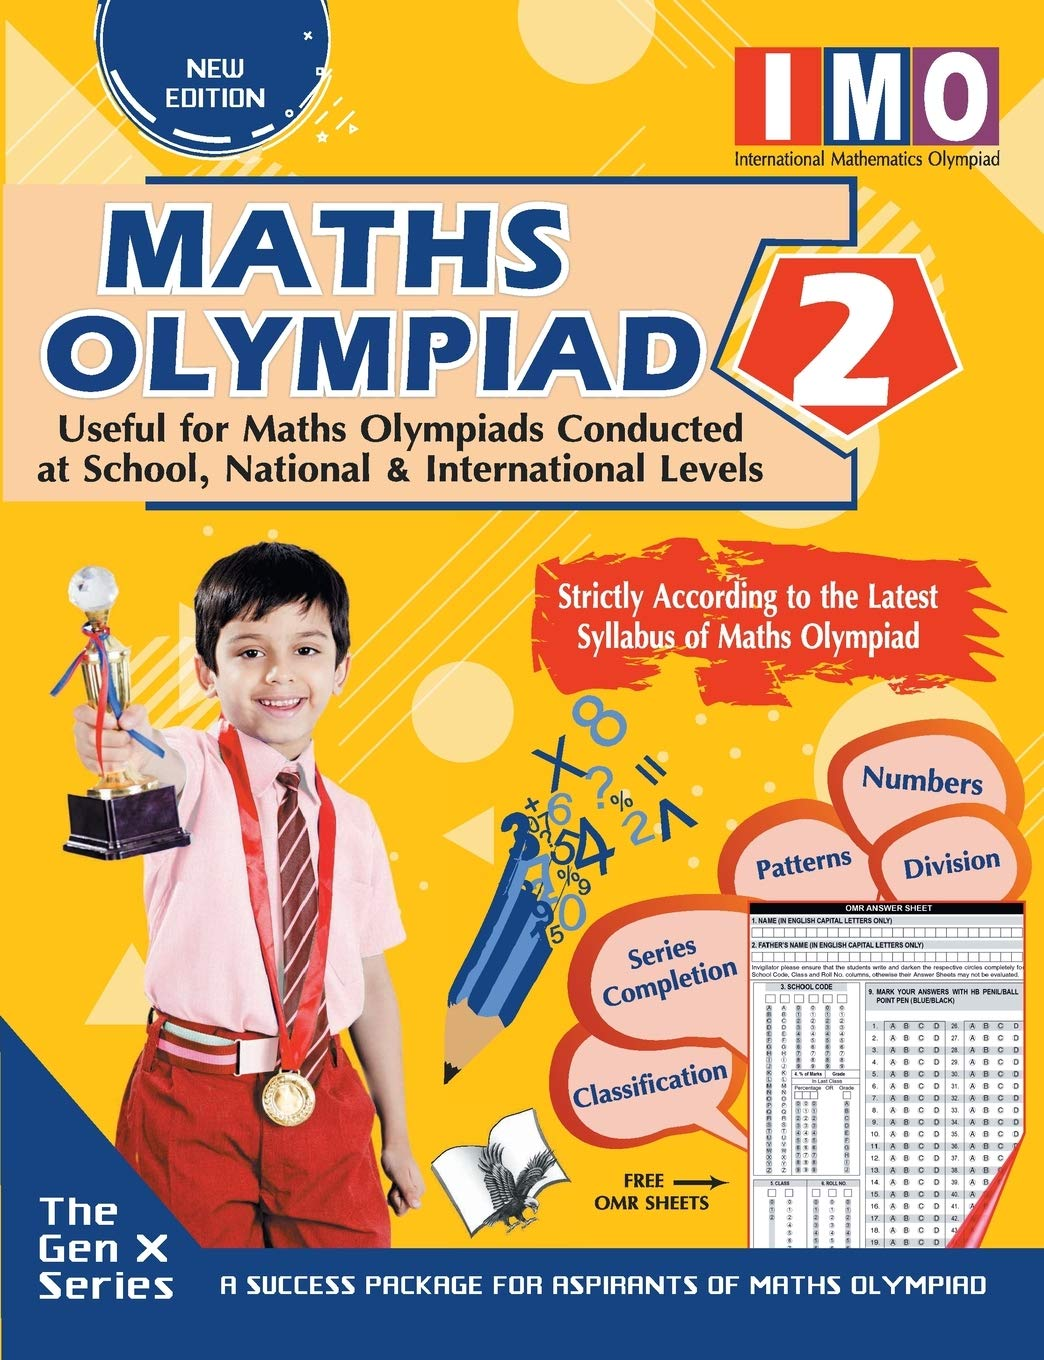 MATHS OLYMPIAD 2 (USEFUL FOR MATHS OLYMPIADS CONDUCTED AT SCHOOL, NATIONAL & INTERNATIONAL LEVELS)